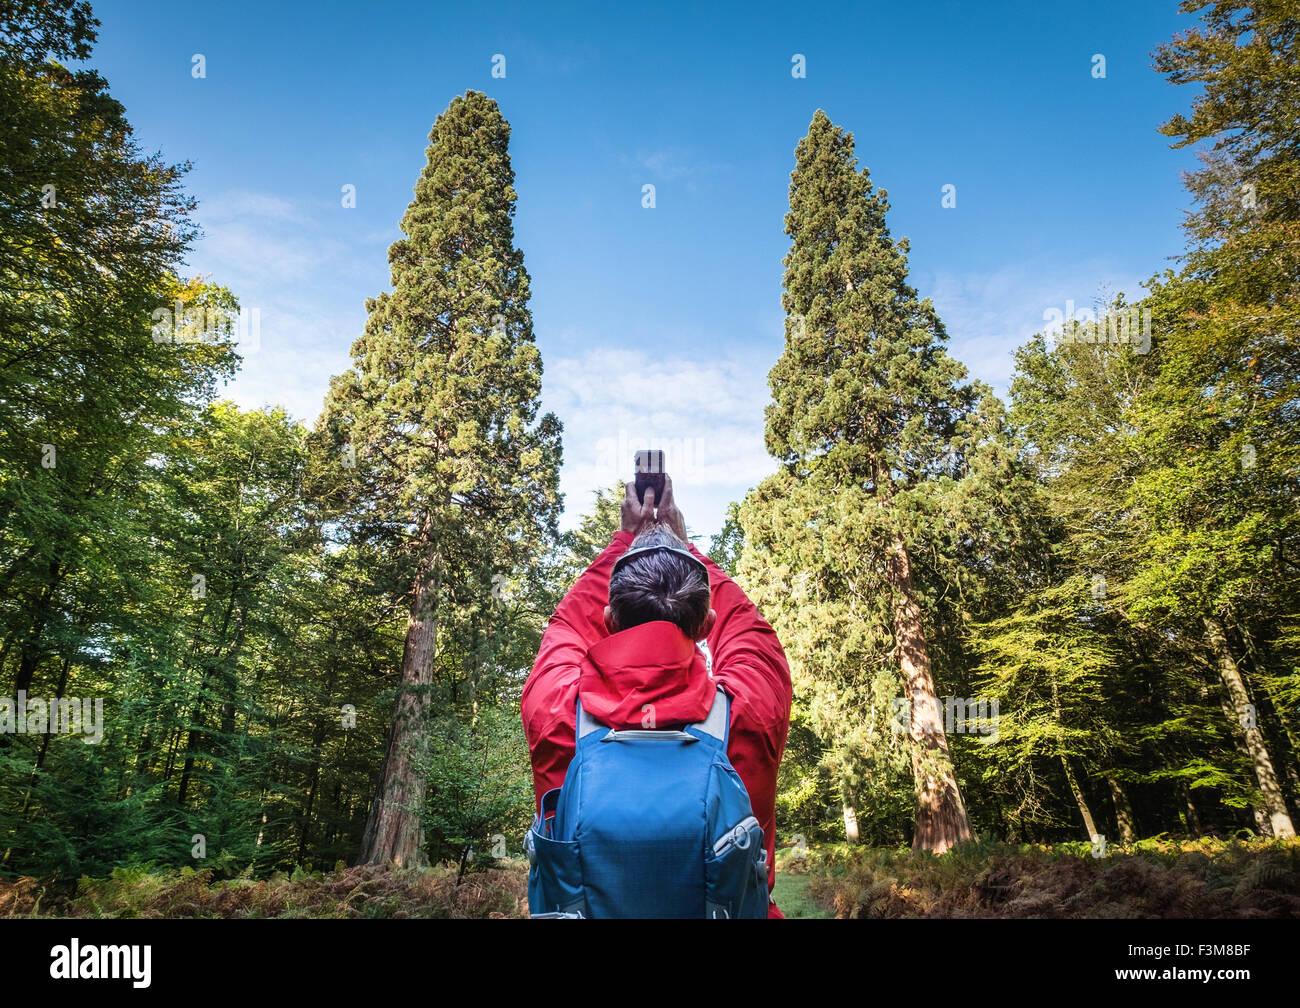 The Giant Sequoia trees, the largest trees in The New Forest National Park weighing over 105 tonnes - Stock Image